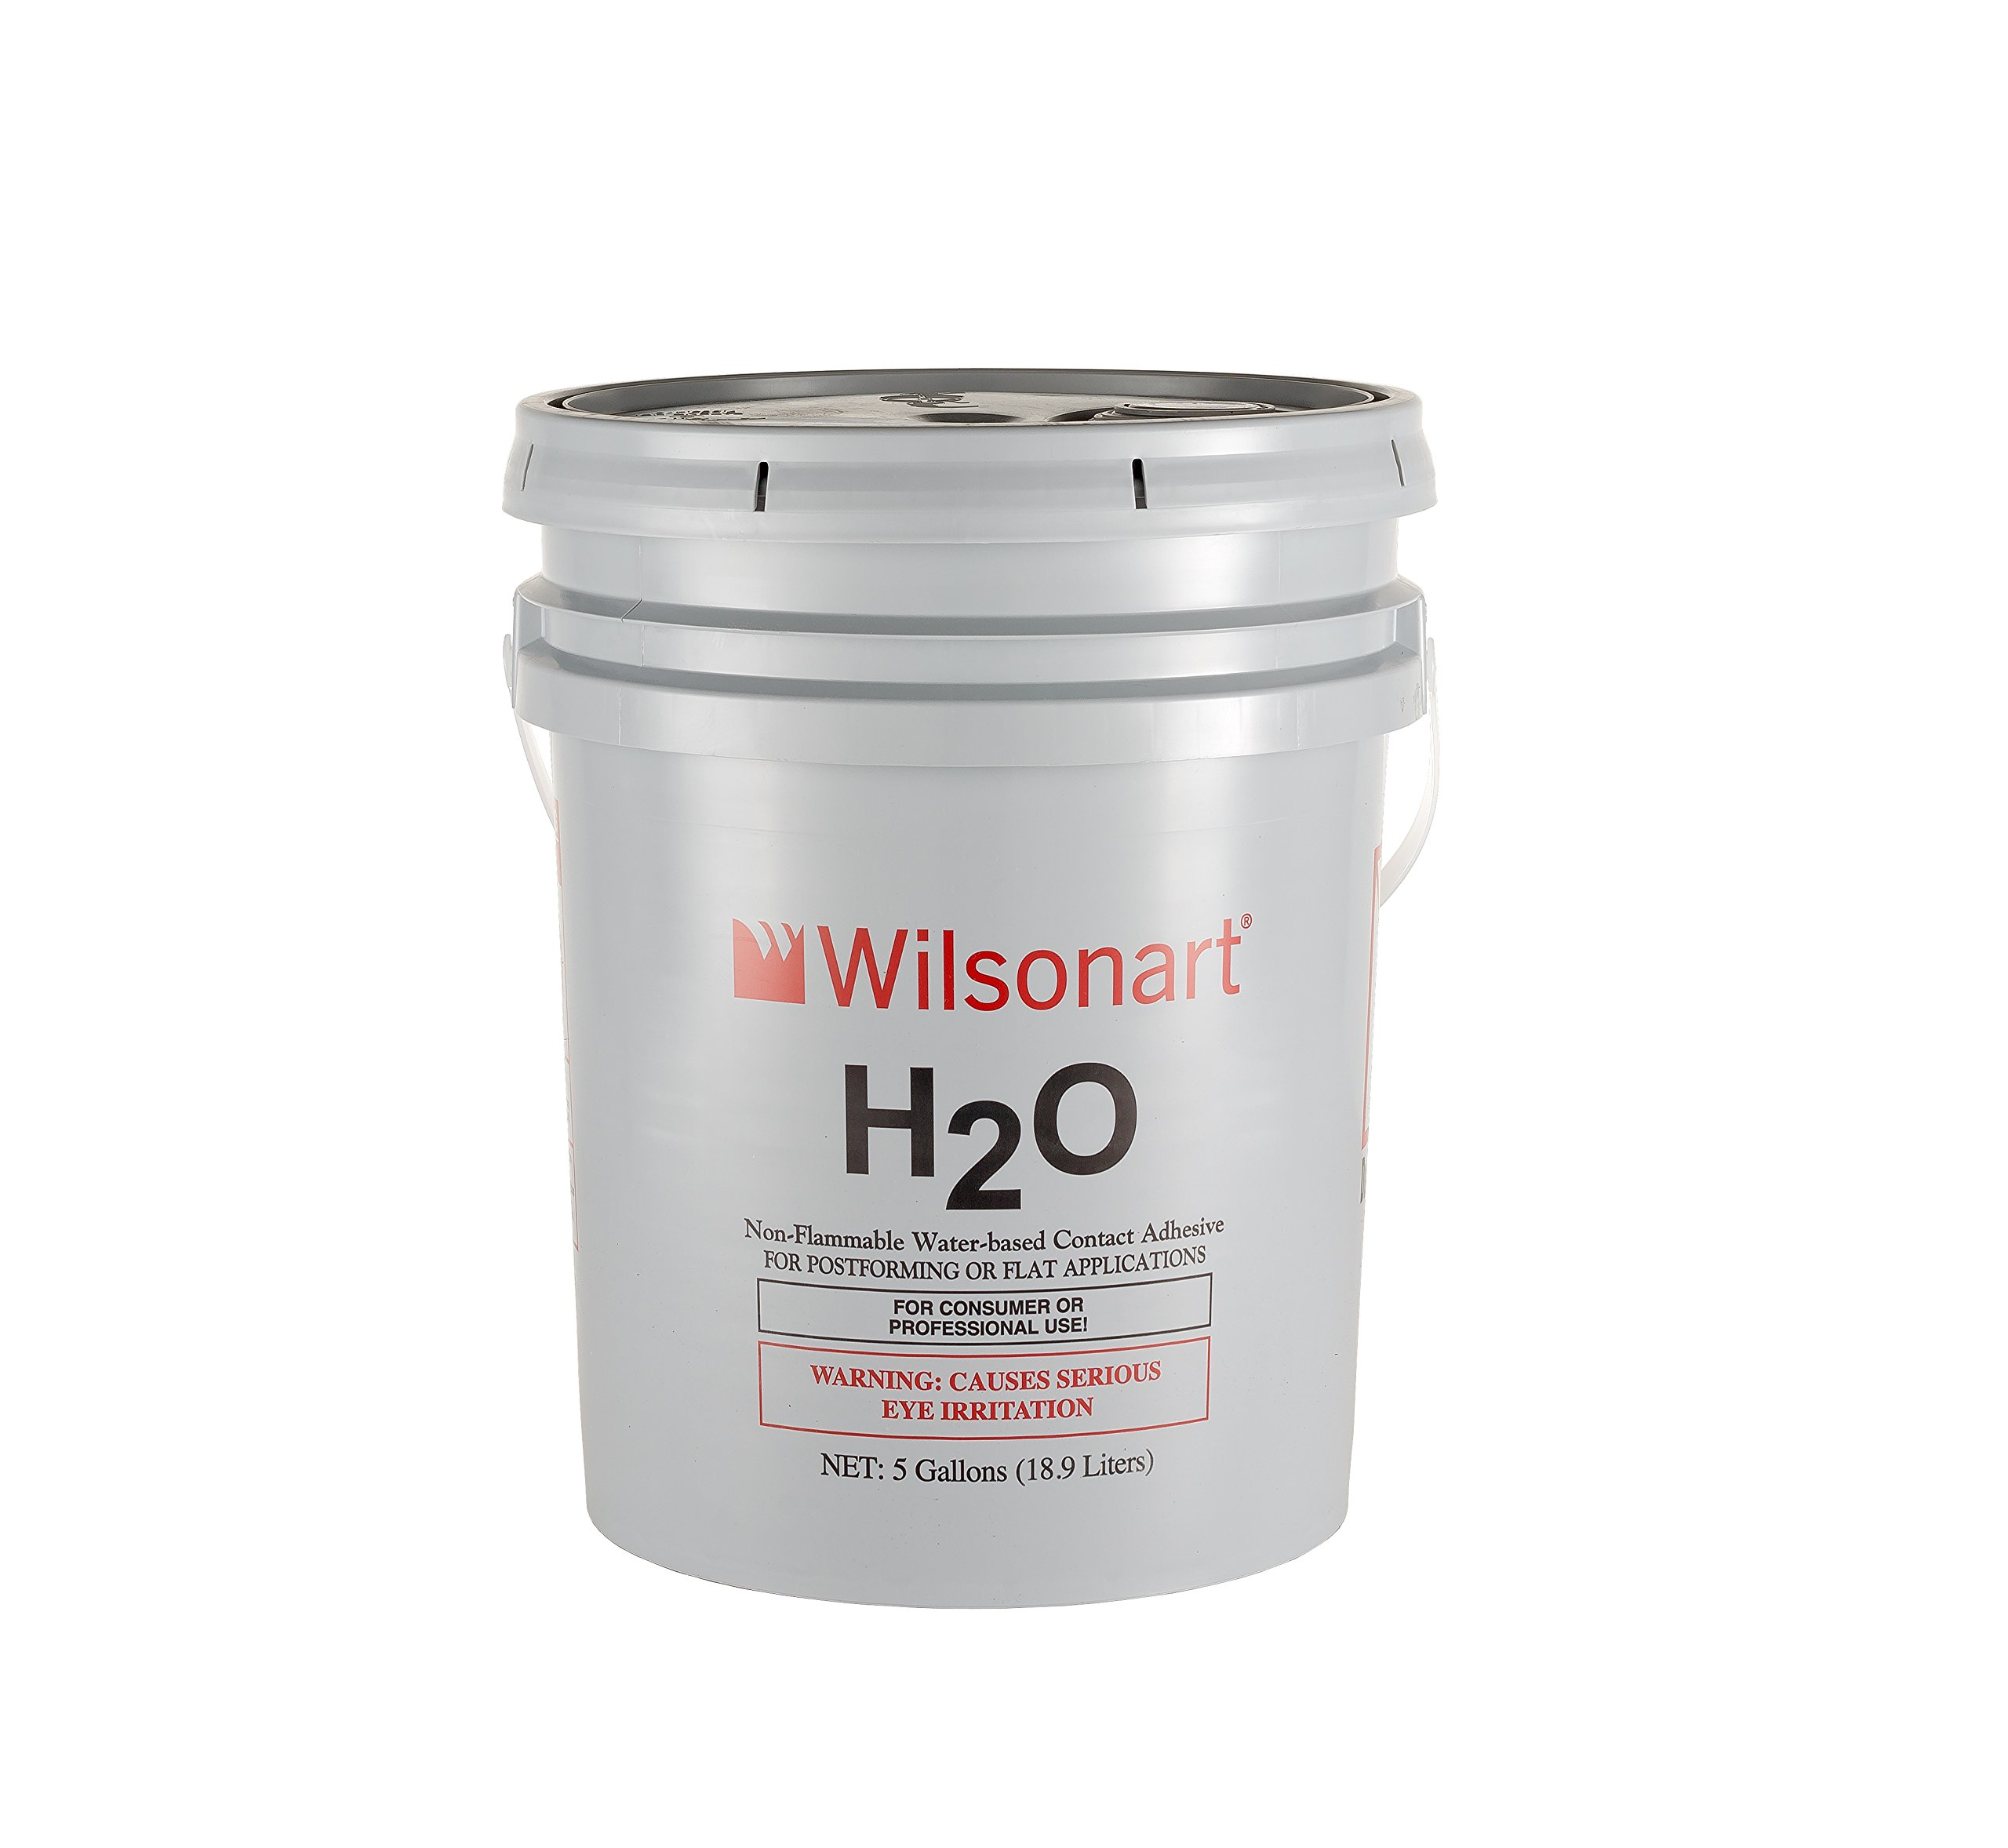 Wilsonart H2O Water-Based Low VOC Nonflammable Contact Adhesive - 5 Gallon